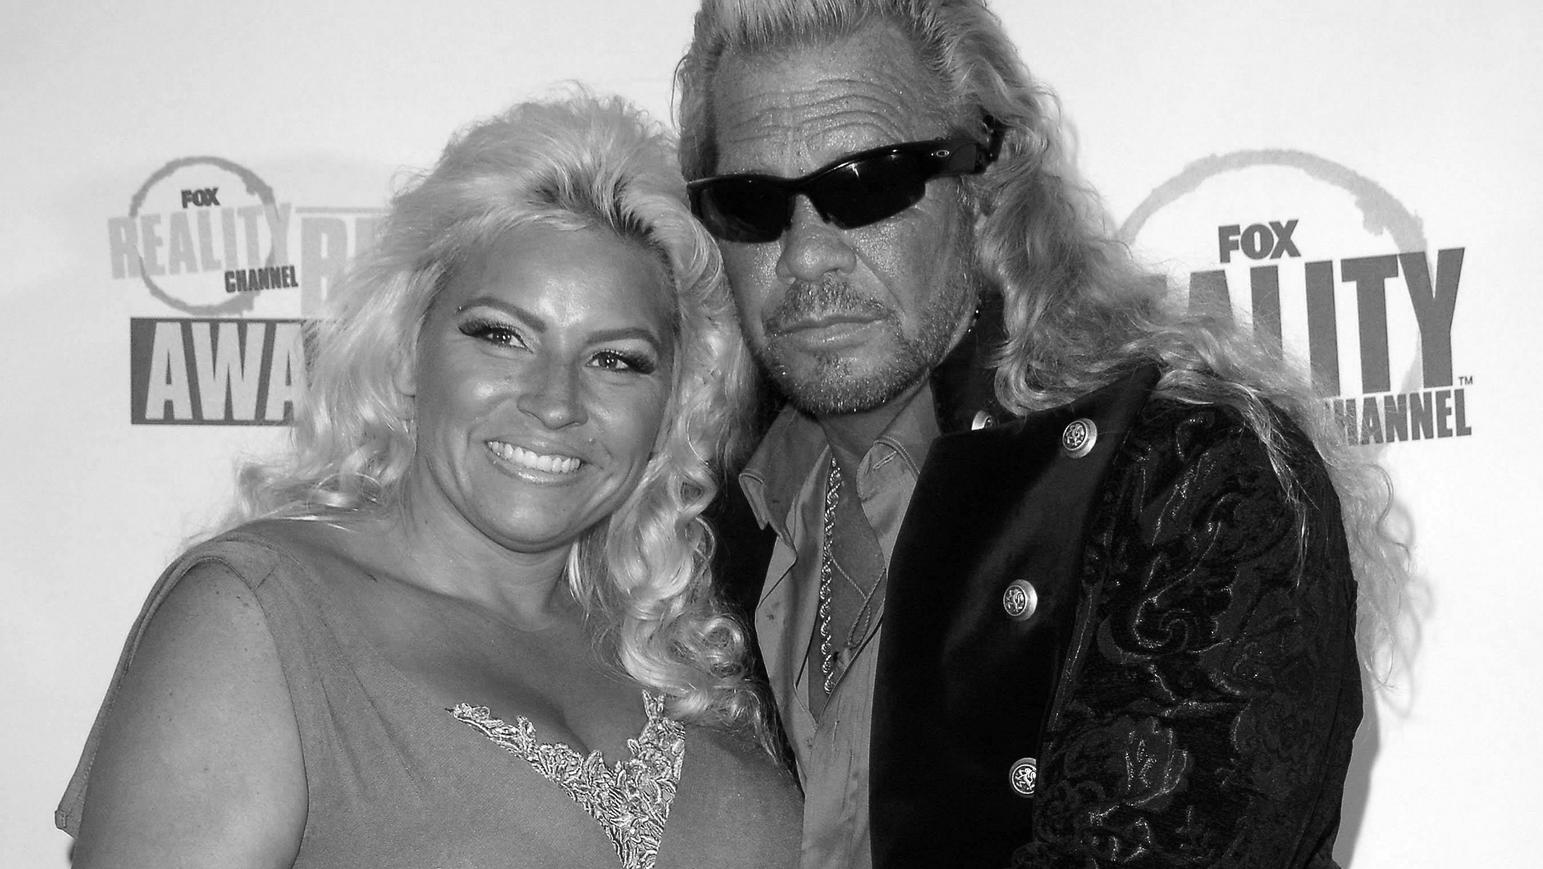 Sept. 25, 2008 - Hollywood, CA - The Fox Reality Channel Really Awards at Avalon in Hollywood, CA 09-24-2008....Image: Beth Chapman and Duane Dog Chapman.... James Diddick / K59935JDI PUBLICATIONxINxGERxSUIxAUTxONLY - ZUMAg49_